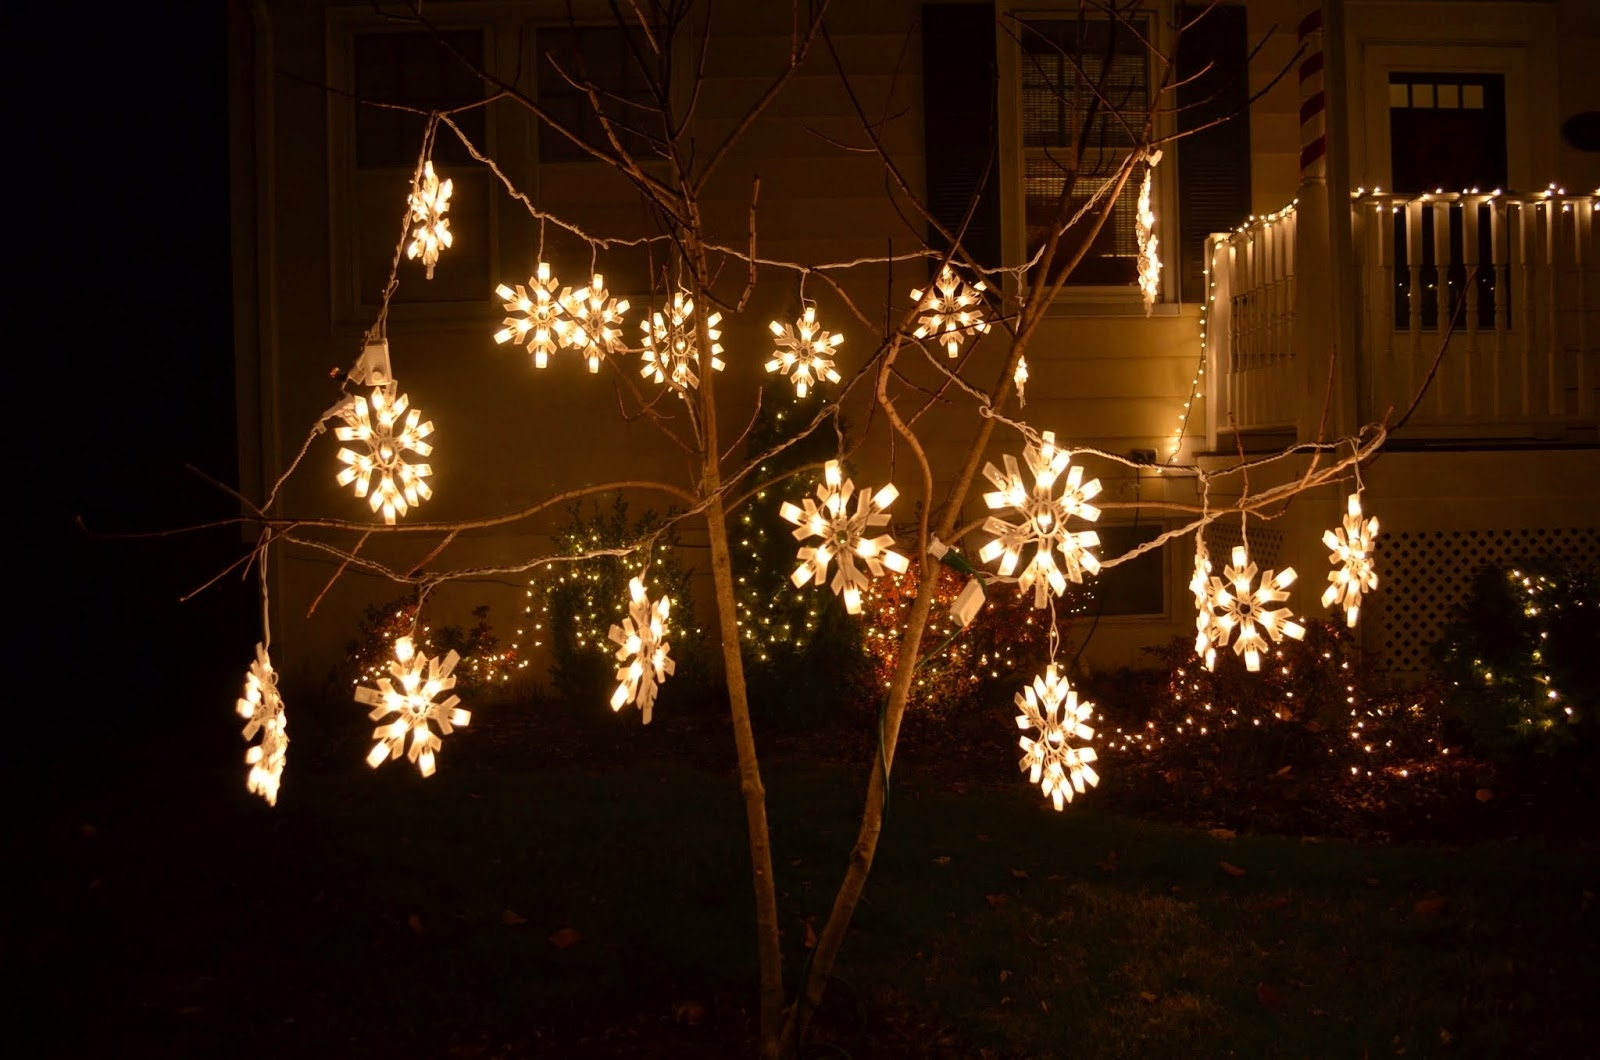 Outdoor Hanging Snowflake Lights Throughout Best And Newest In The Little Yellow House: Outdoor Christmas Lights At Night (Gallery 5 of 20)